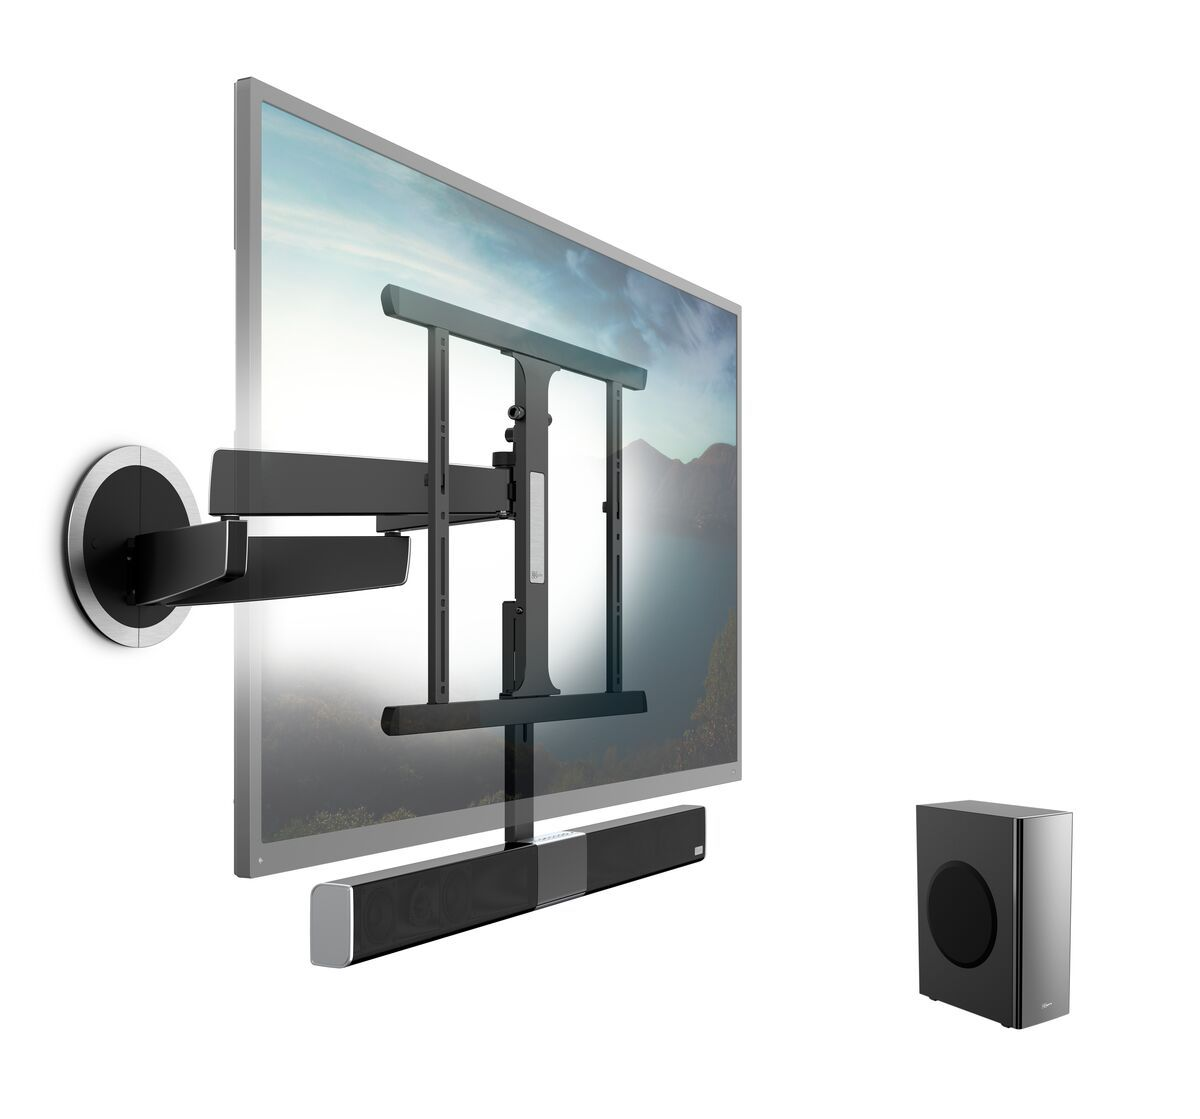 Vogel's SoundMount (NEXT 8365) Full-Motion TV Wall Mount with Integrated Sound 40 65 30 Motion (up to 120°) Product